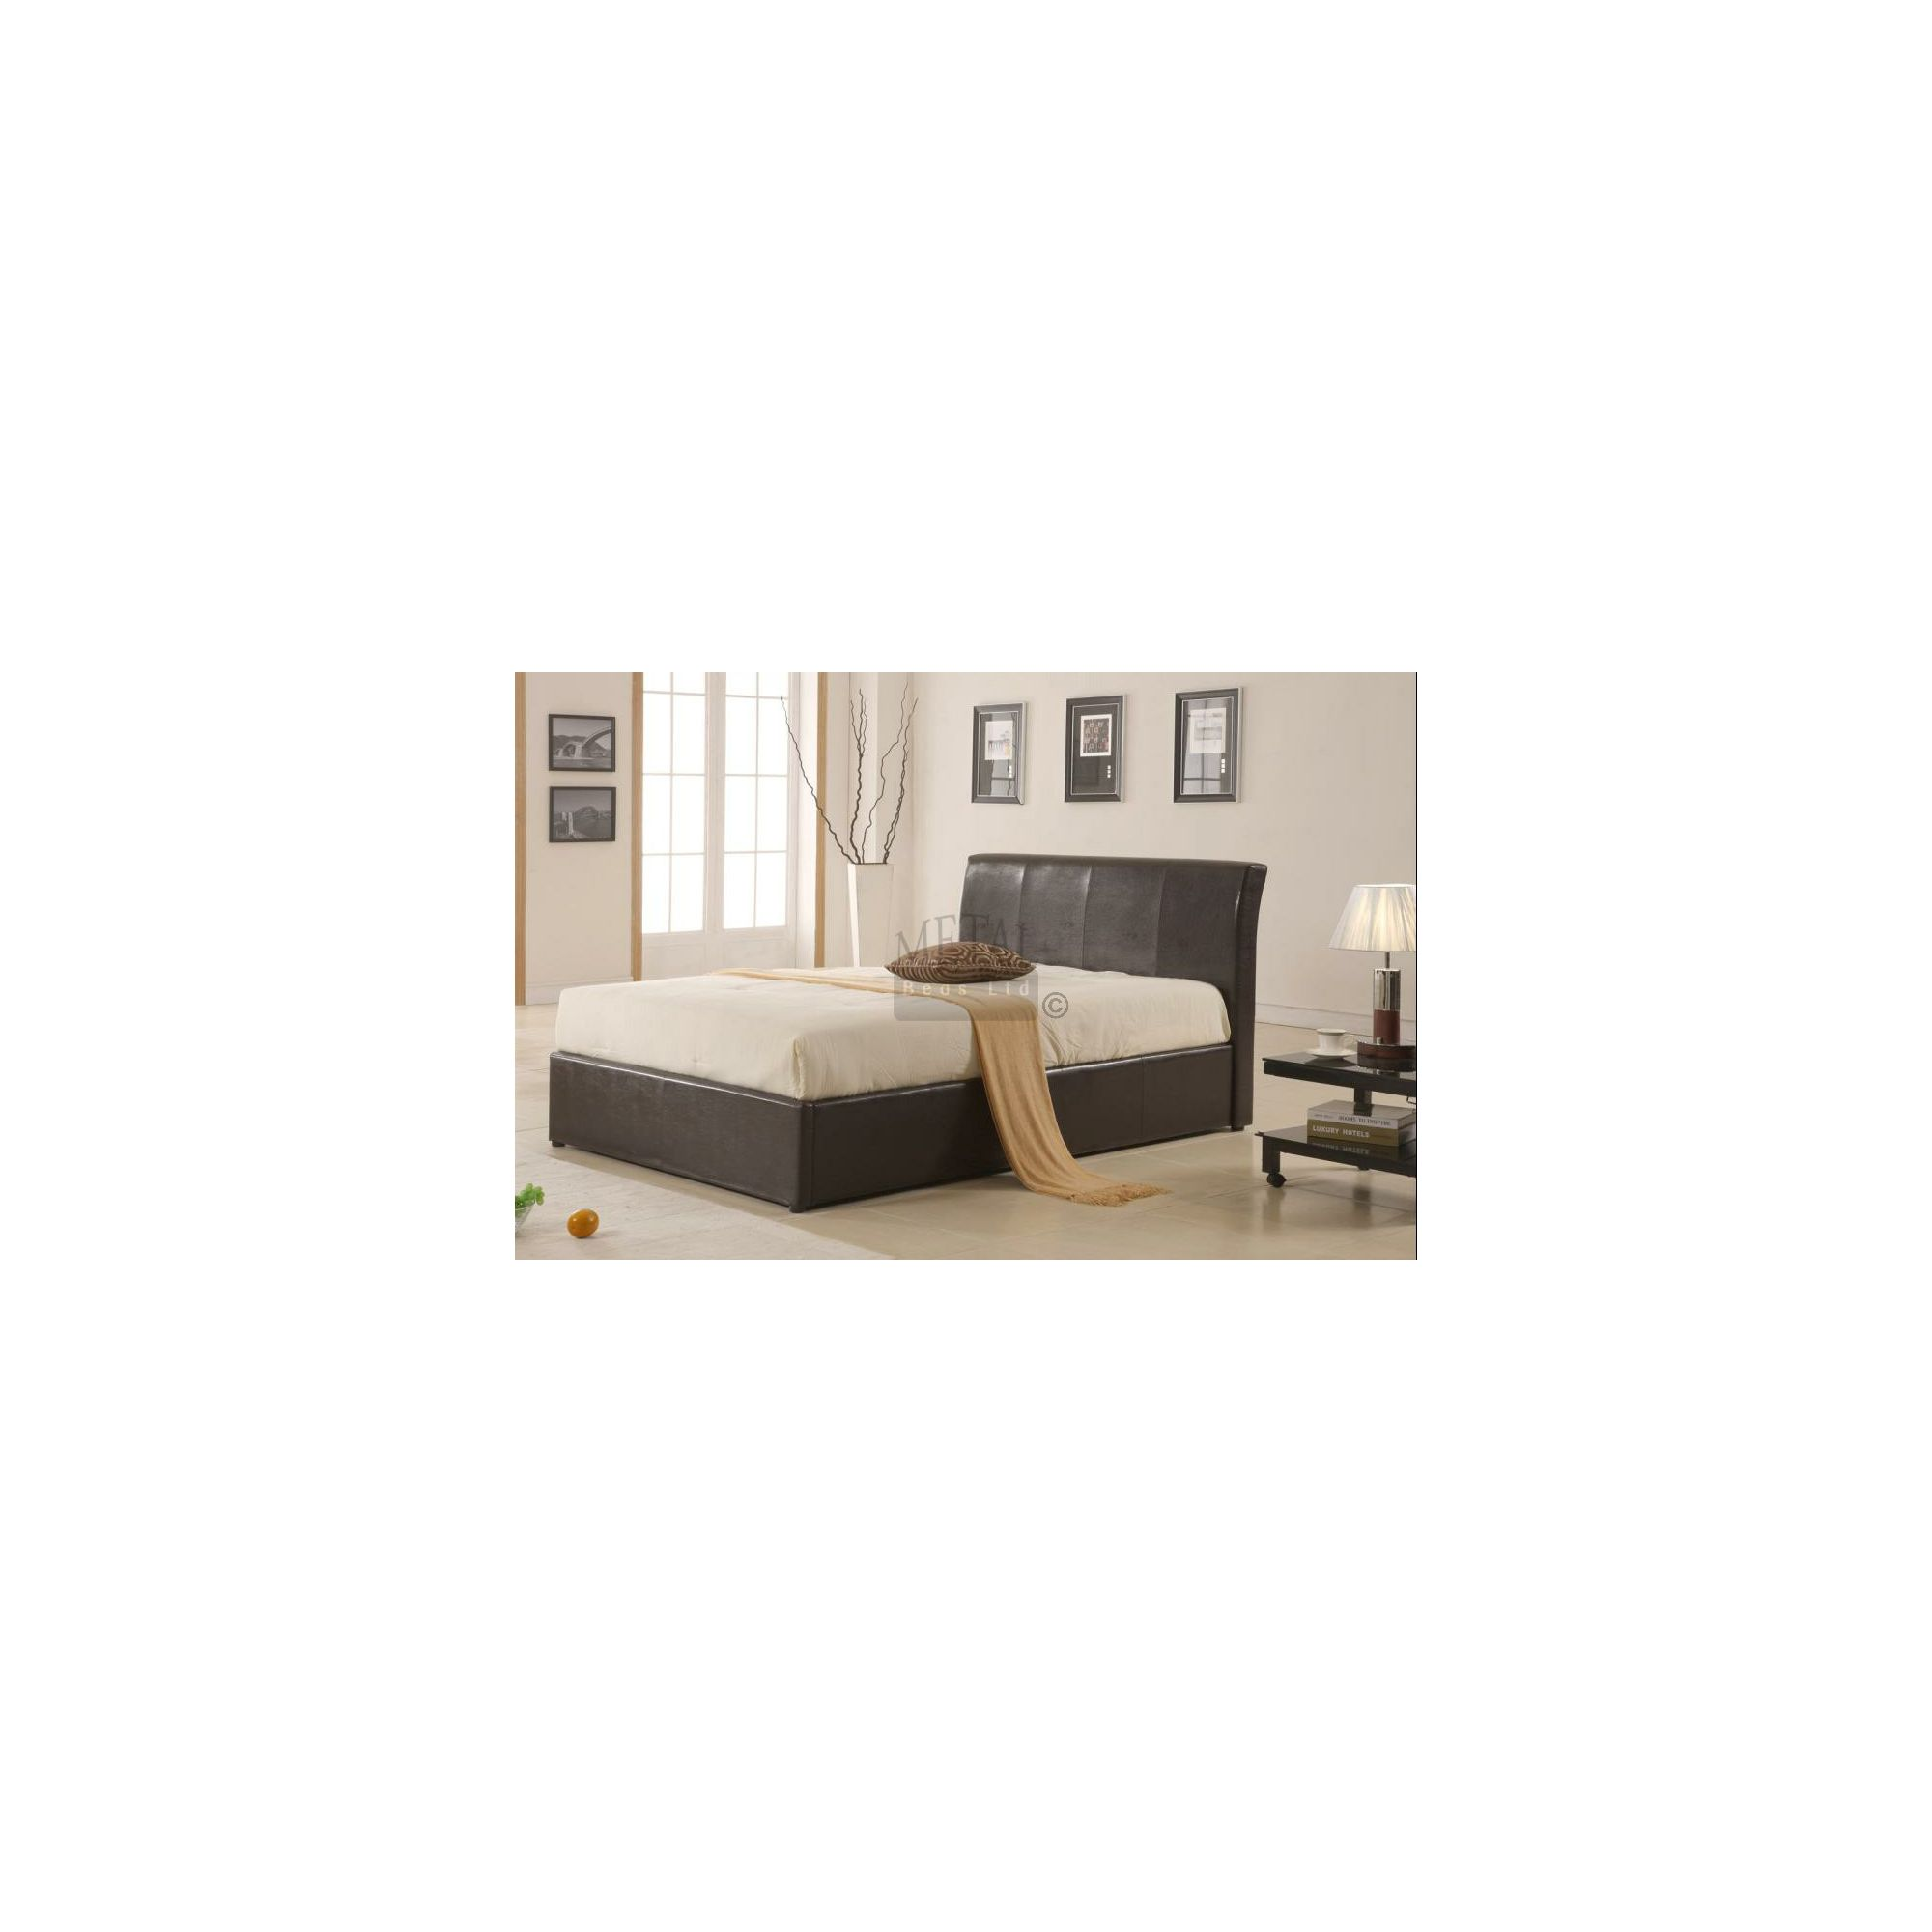 MetalBedsLtd Texas New Ottoman Bed - Single - Brown at Tesco Direct